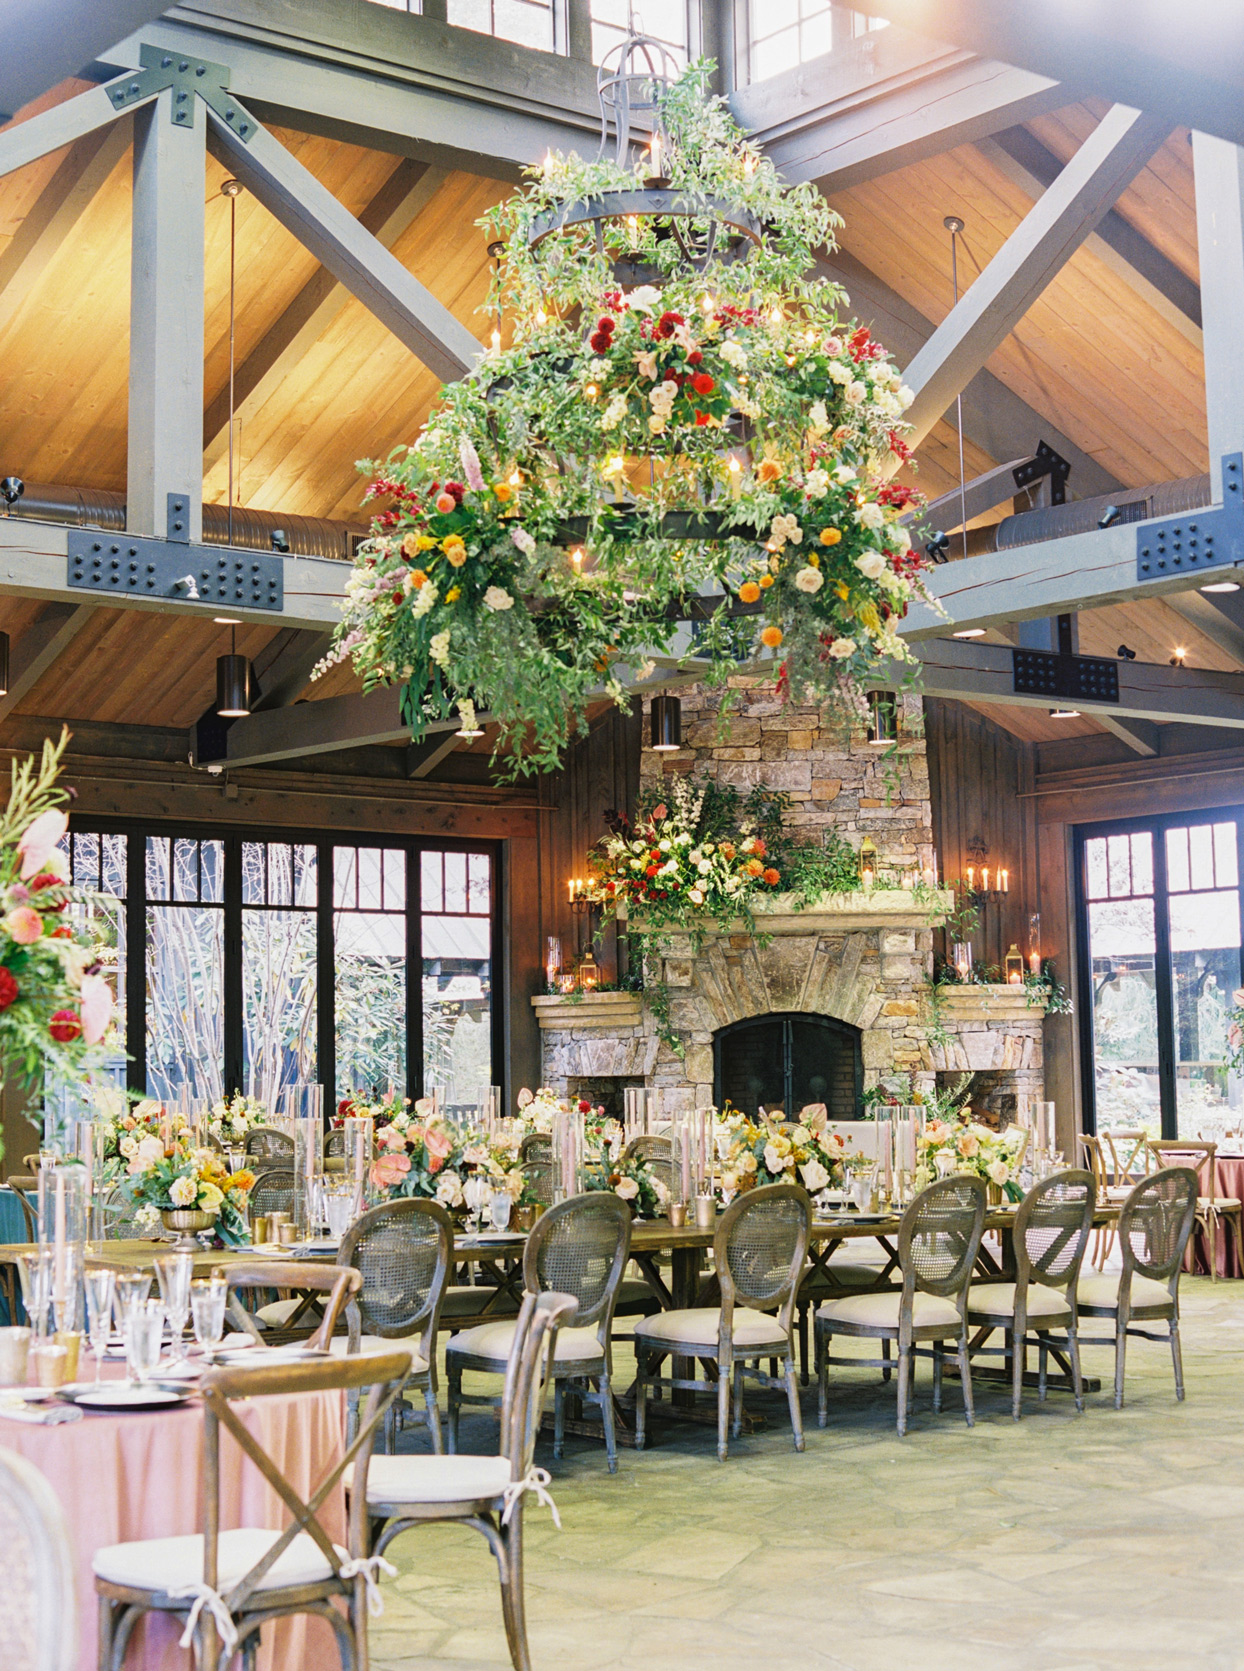 Indoor wedding reception in a wood-ceilinged room accented by tall windows and an elegant stone fireplace